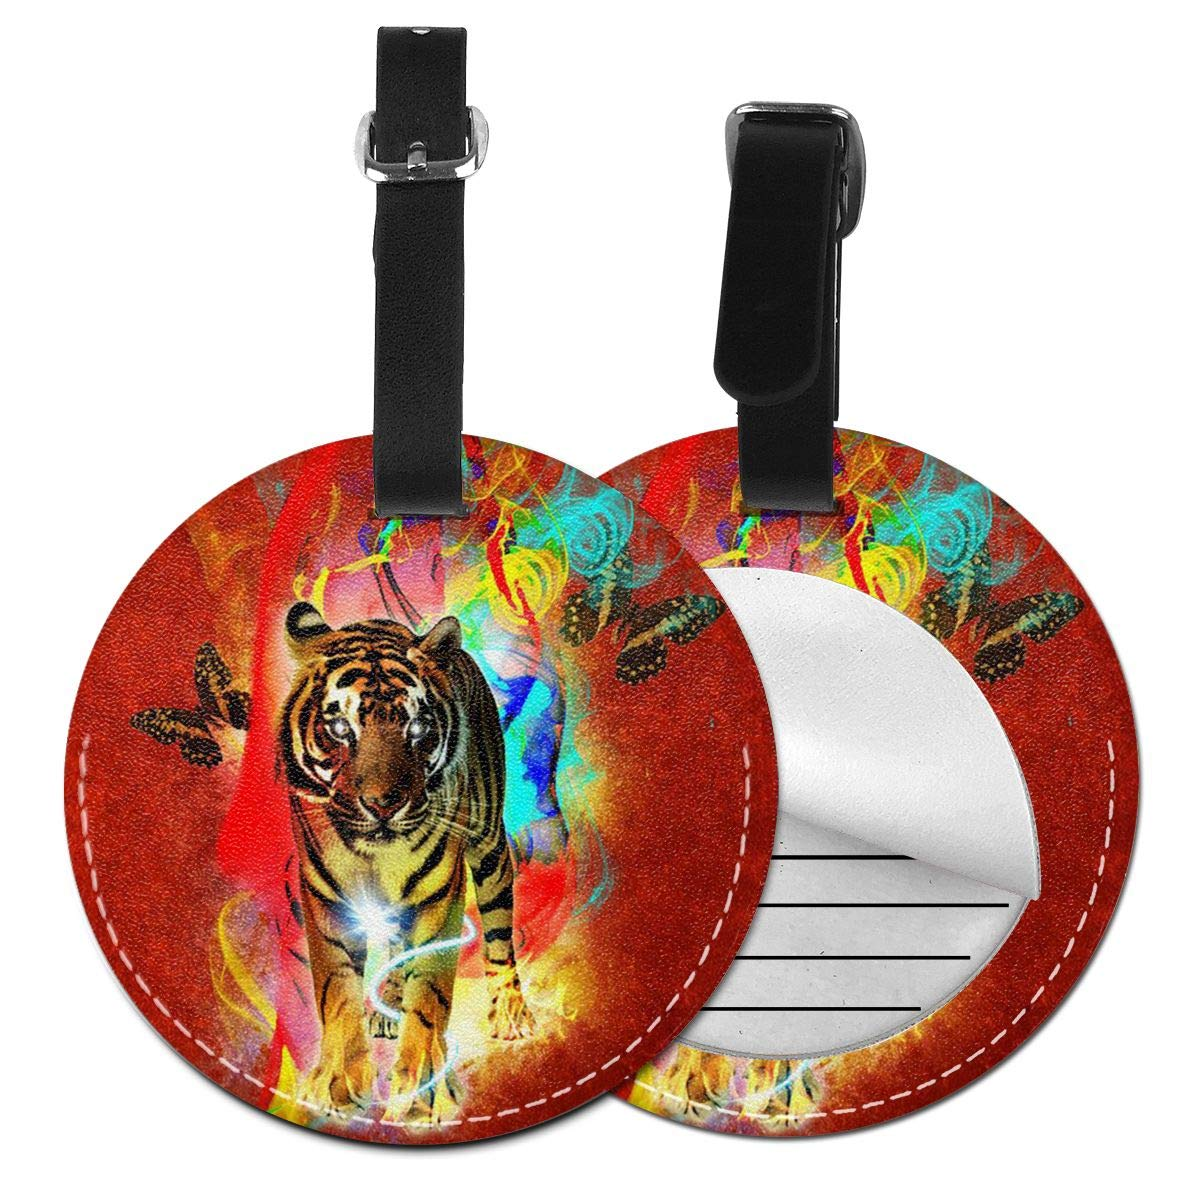 Free-2 Colorful Tiger Luggage Tag 3D Print Leather Travel Bag ID Card